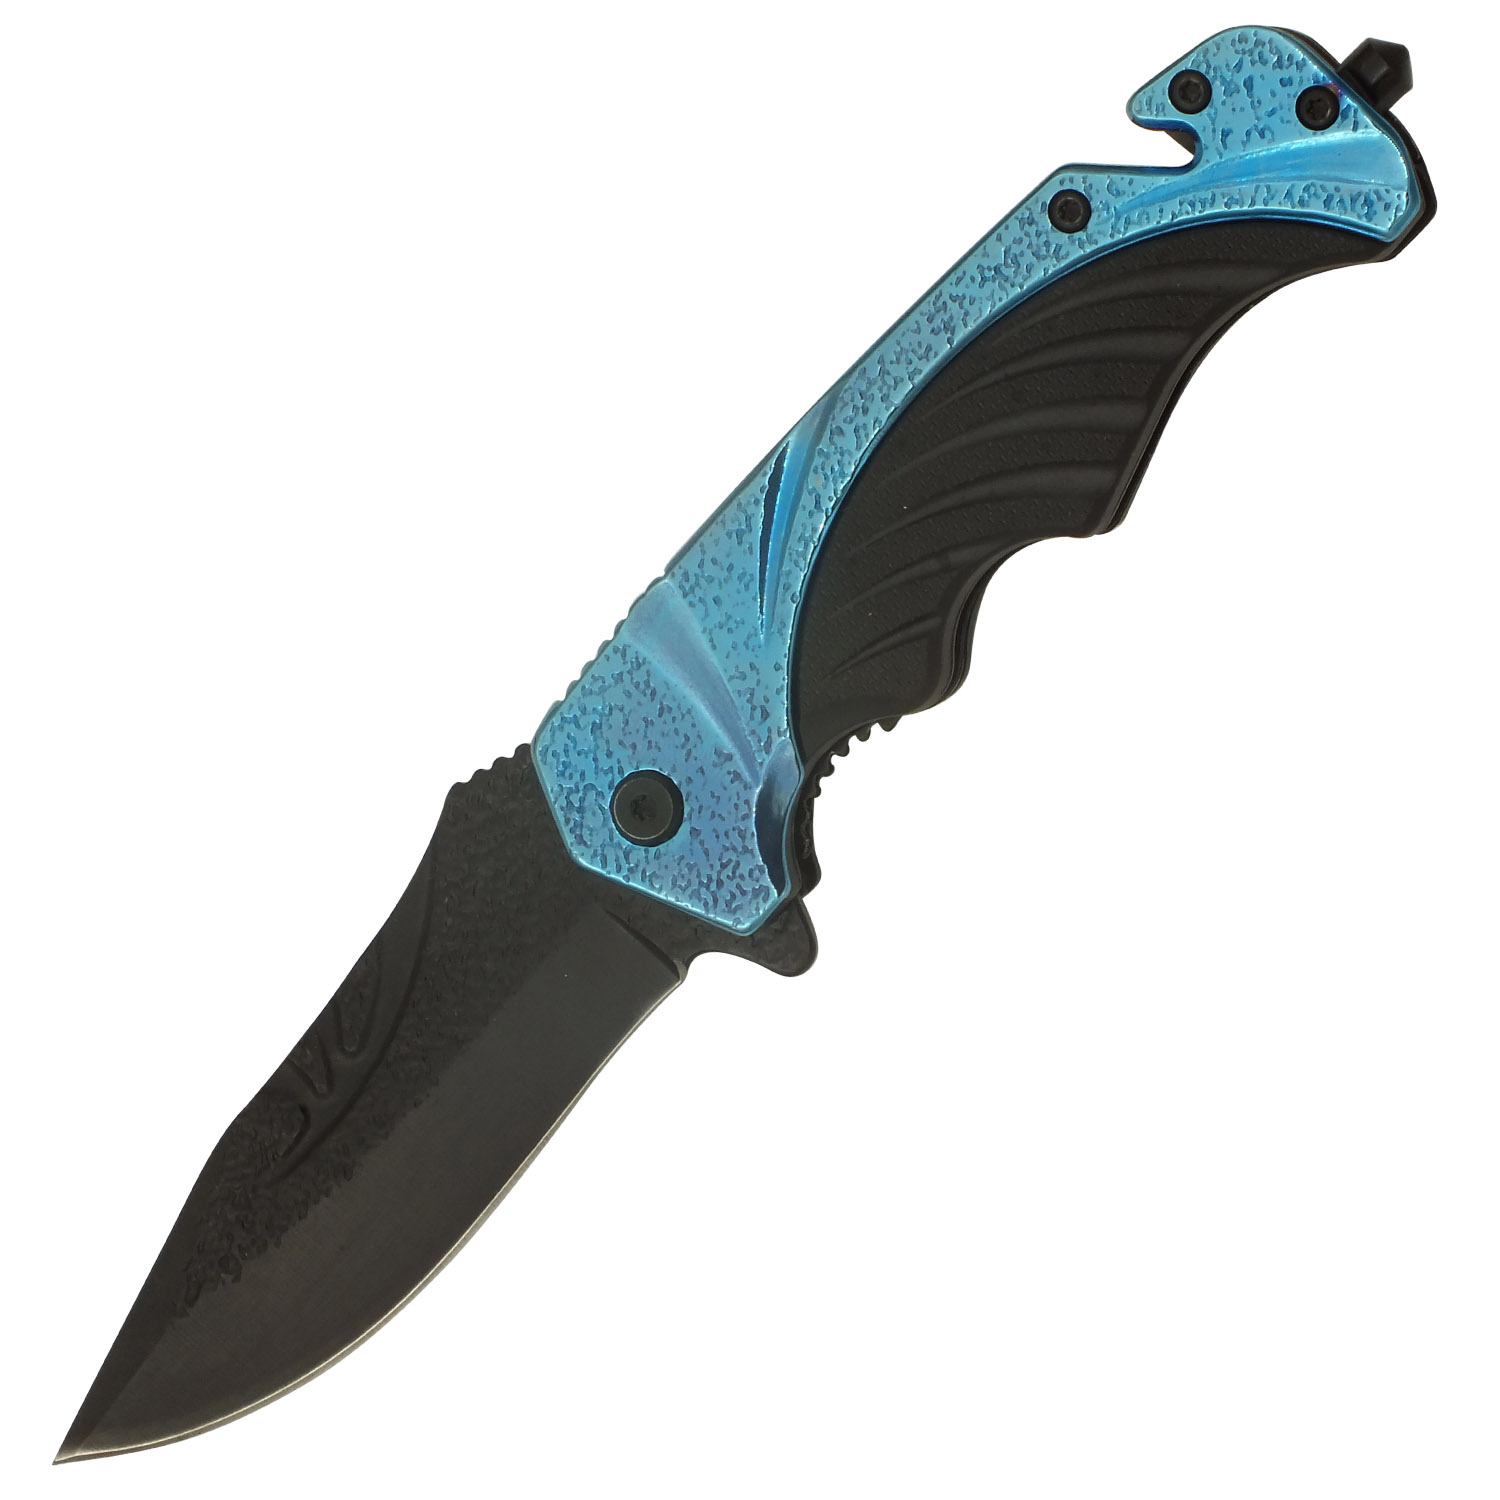 Sky Blue Streak Spring Assisted Folding Pocket Knife